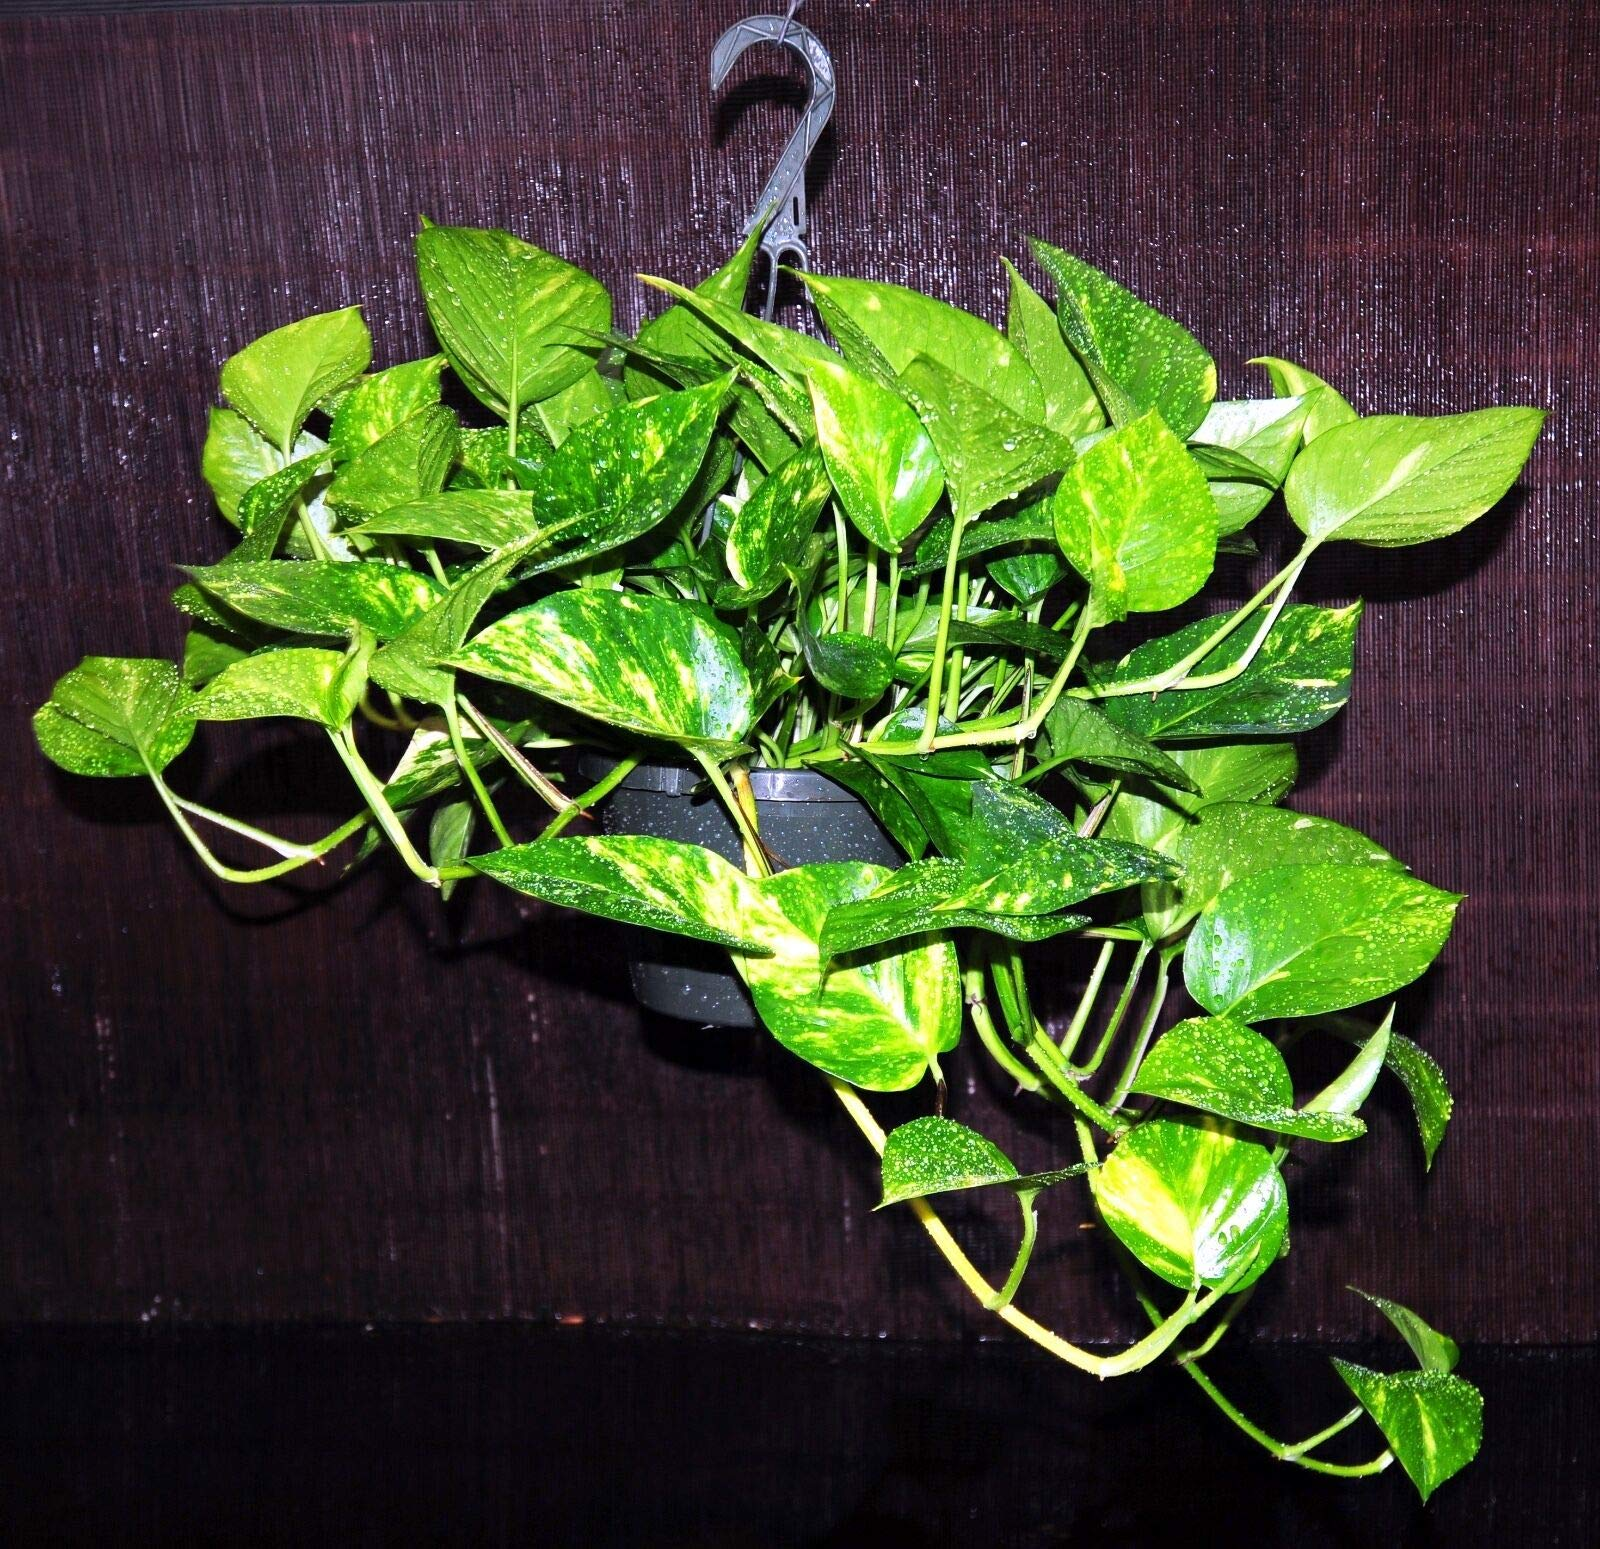 Huge Golden Pothos Very Large 8'' Hanging Basket Excellent Easy Houseplant (Premium Quality) by AY-Premium